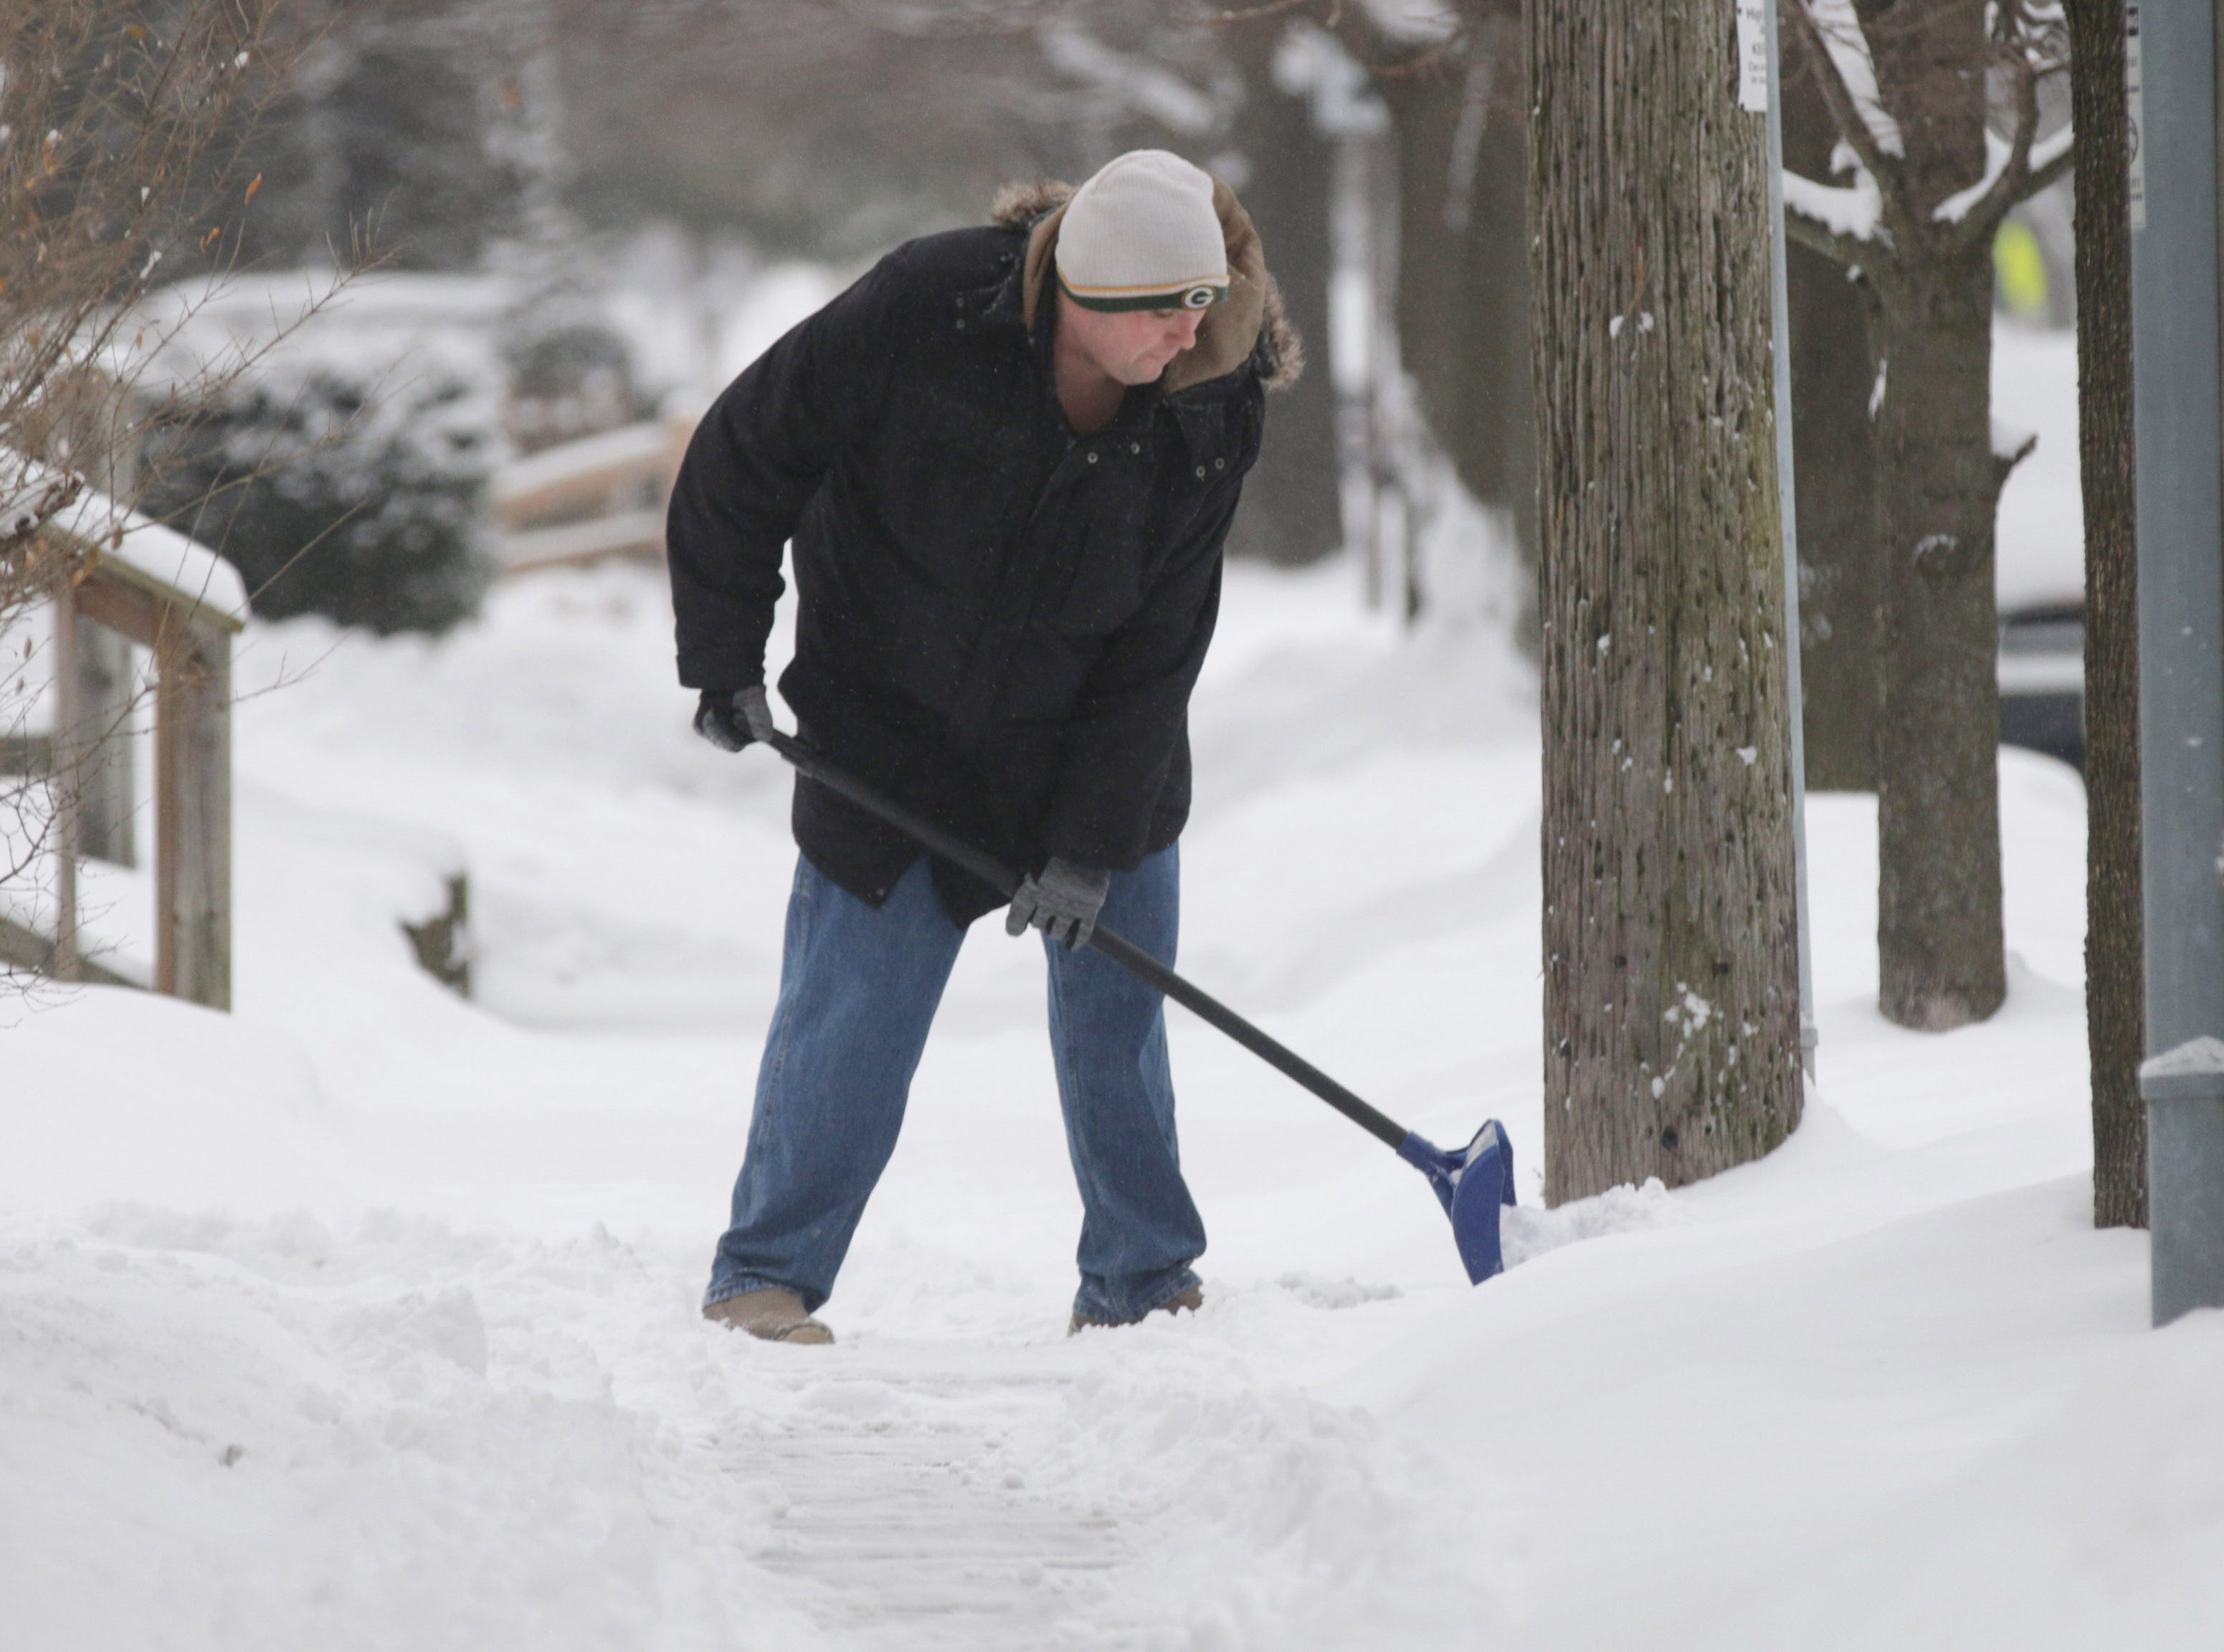 Billy Poedter of Sheboygan shovels snow on his sidewalk, Wednesday, January 23, 2019, in Sheboygan, Wis.